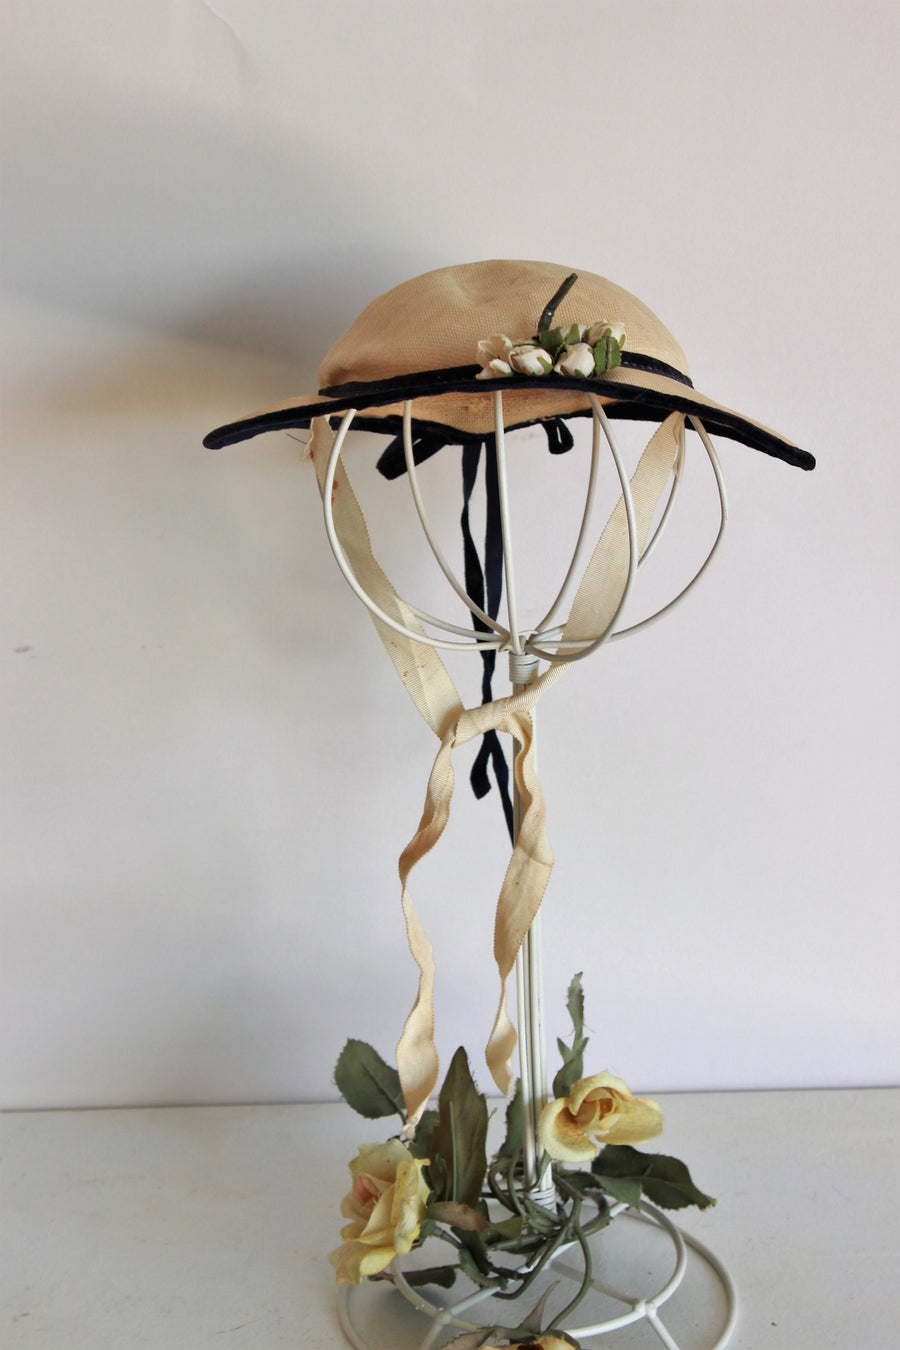 Vintage 1940s Straw Hat with Velvet Ribbon Trim and Flowers